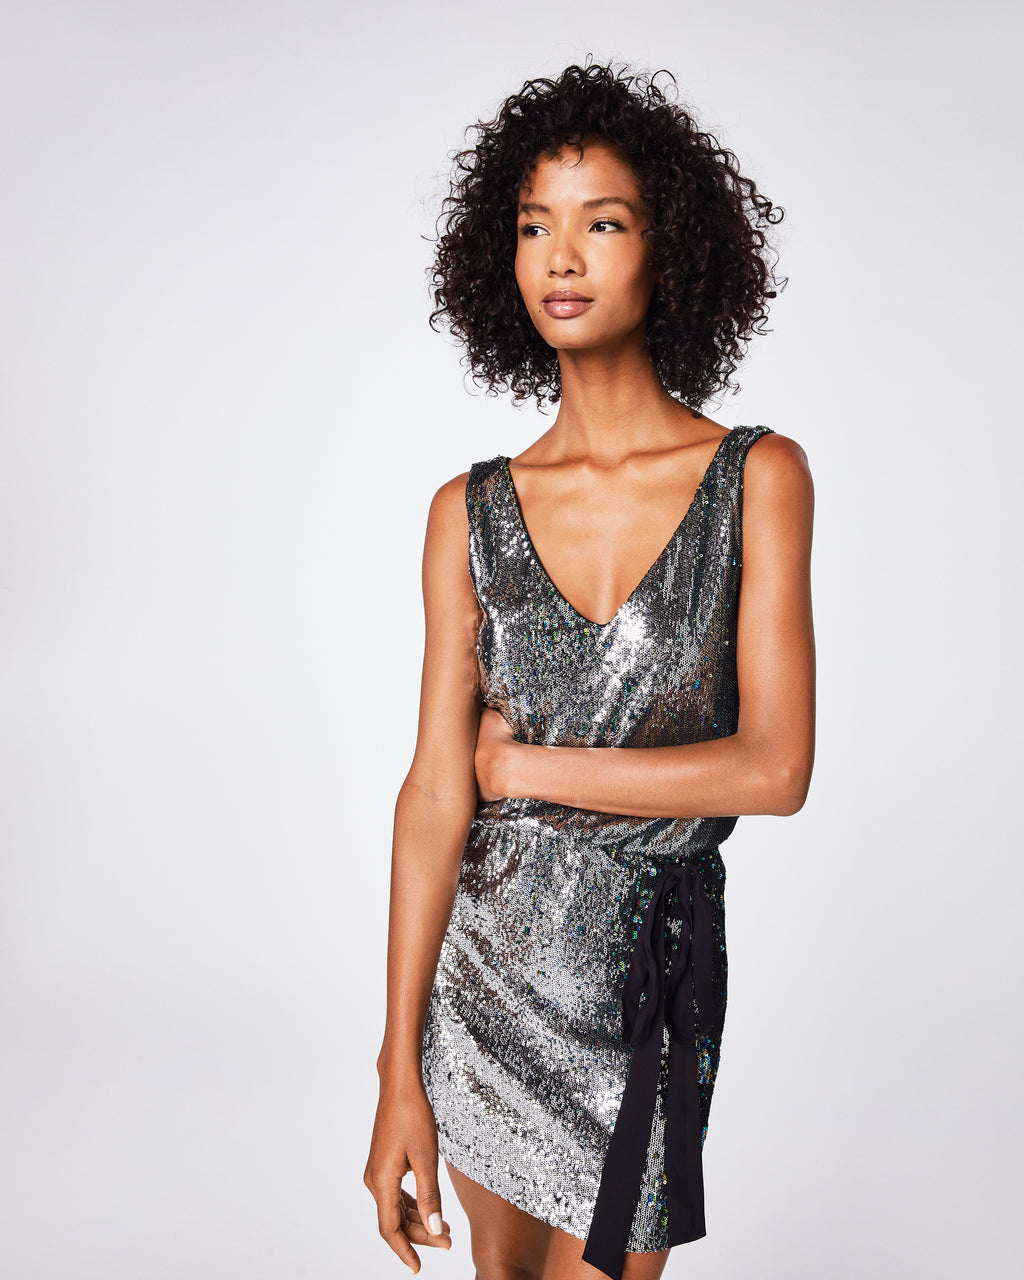 BP10252 - MERMAID SEQUIN V-NECK DRESS - dresses - short - Prep for the party with this sequin dress. This dress features an elastic waist with black drawstring bow. Pair it with a leather jacket and black boots.